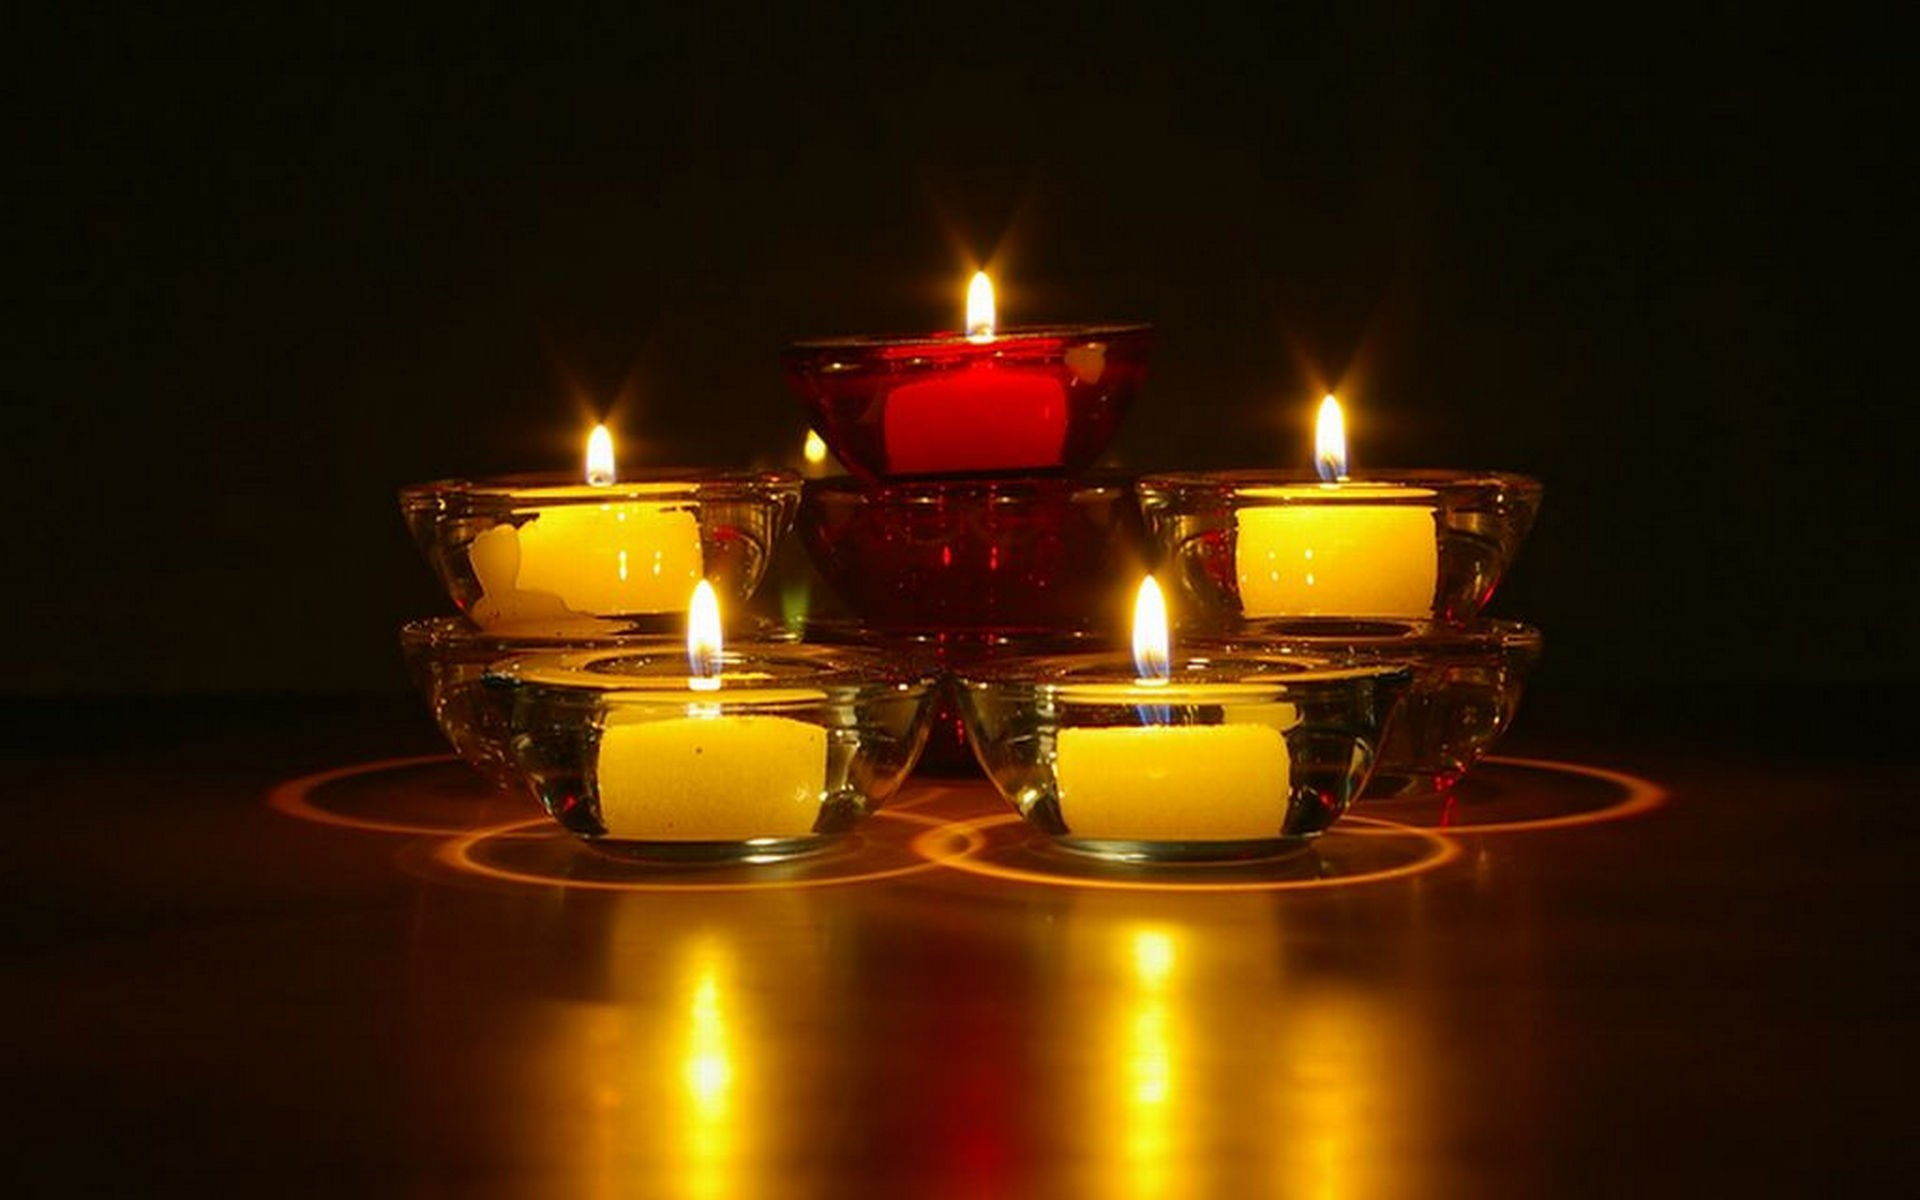 Fall Evening Wallpapers Candles Hd Wallpapers Candle Backgrounds And Images All